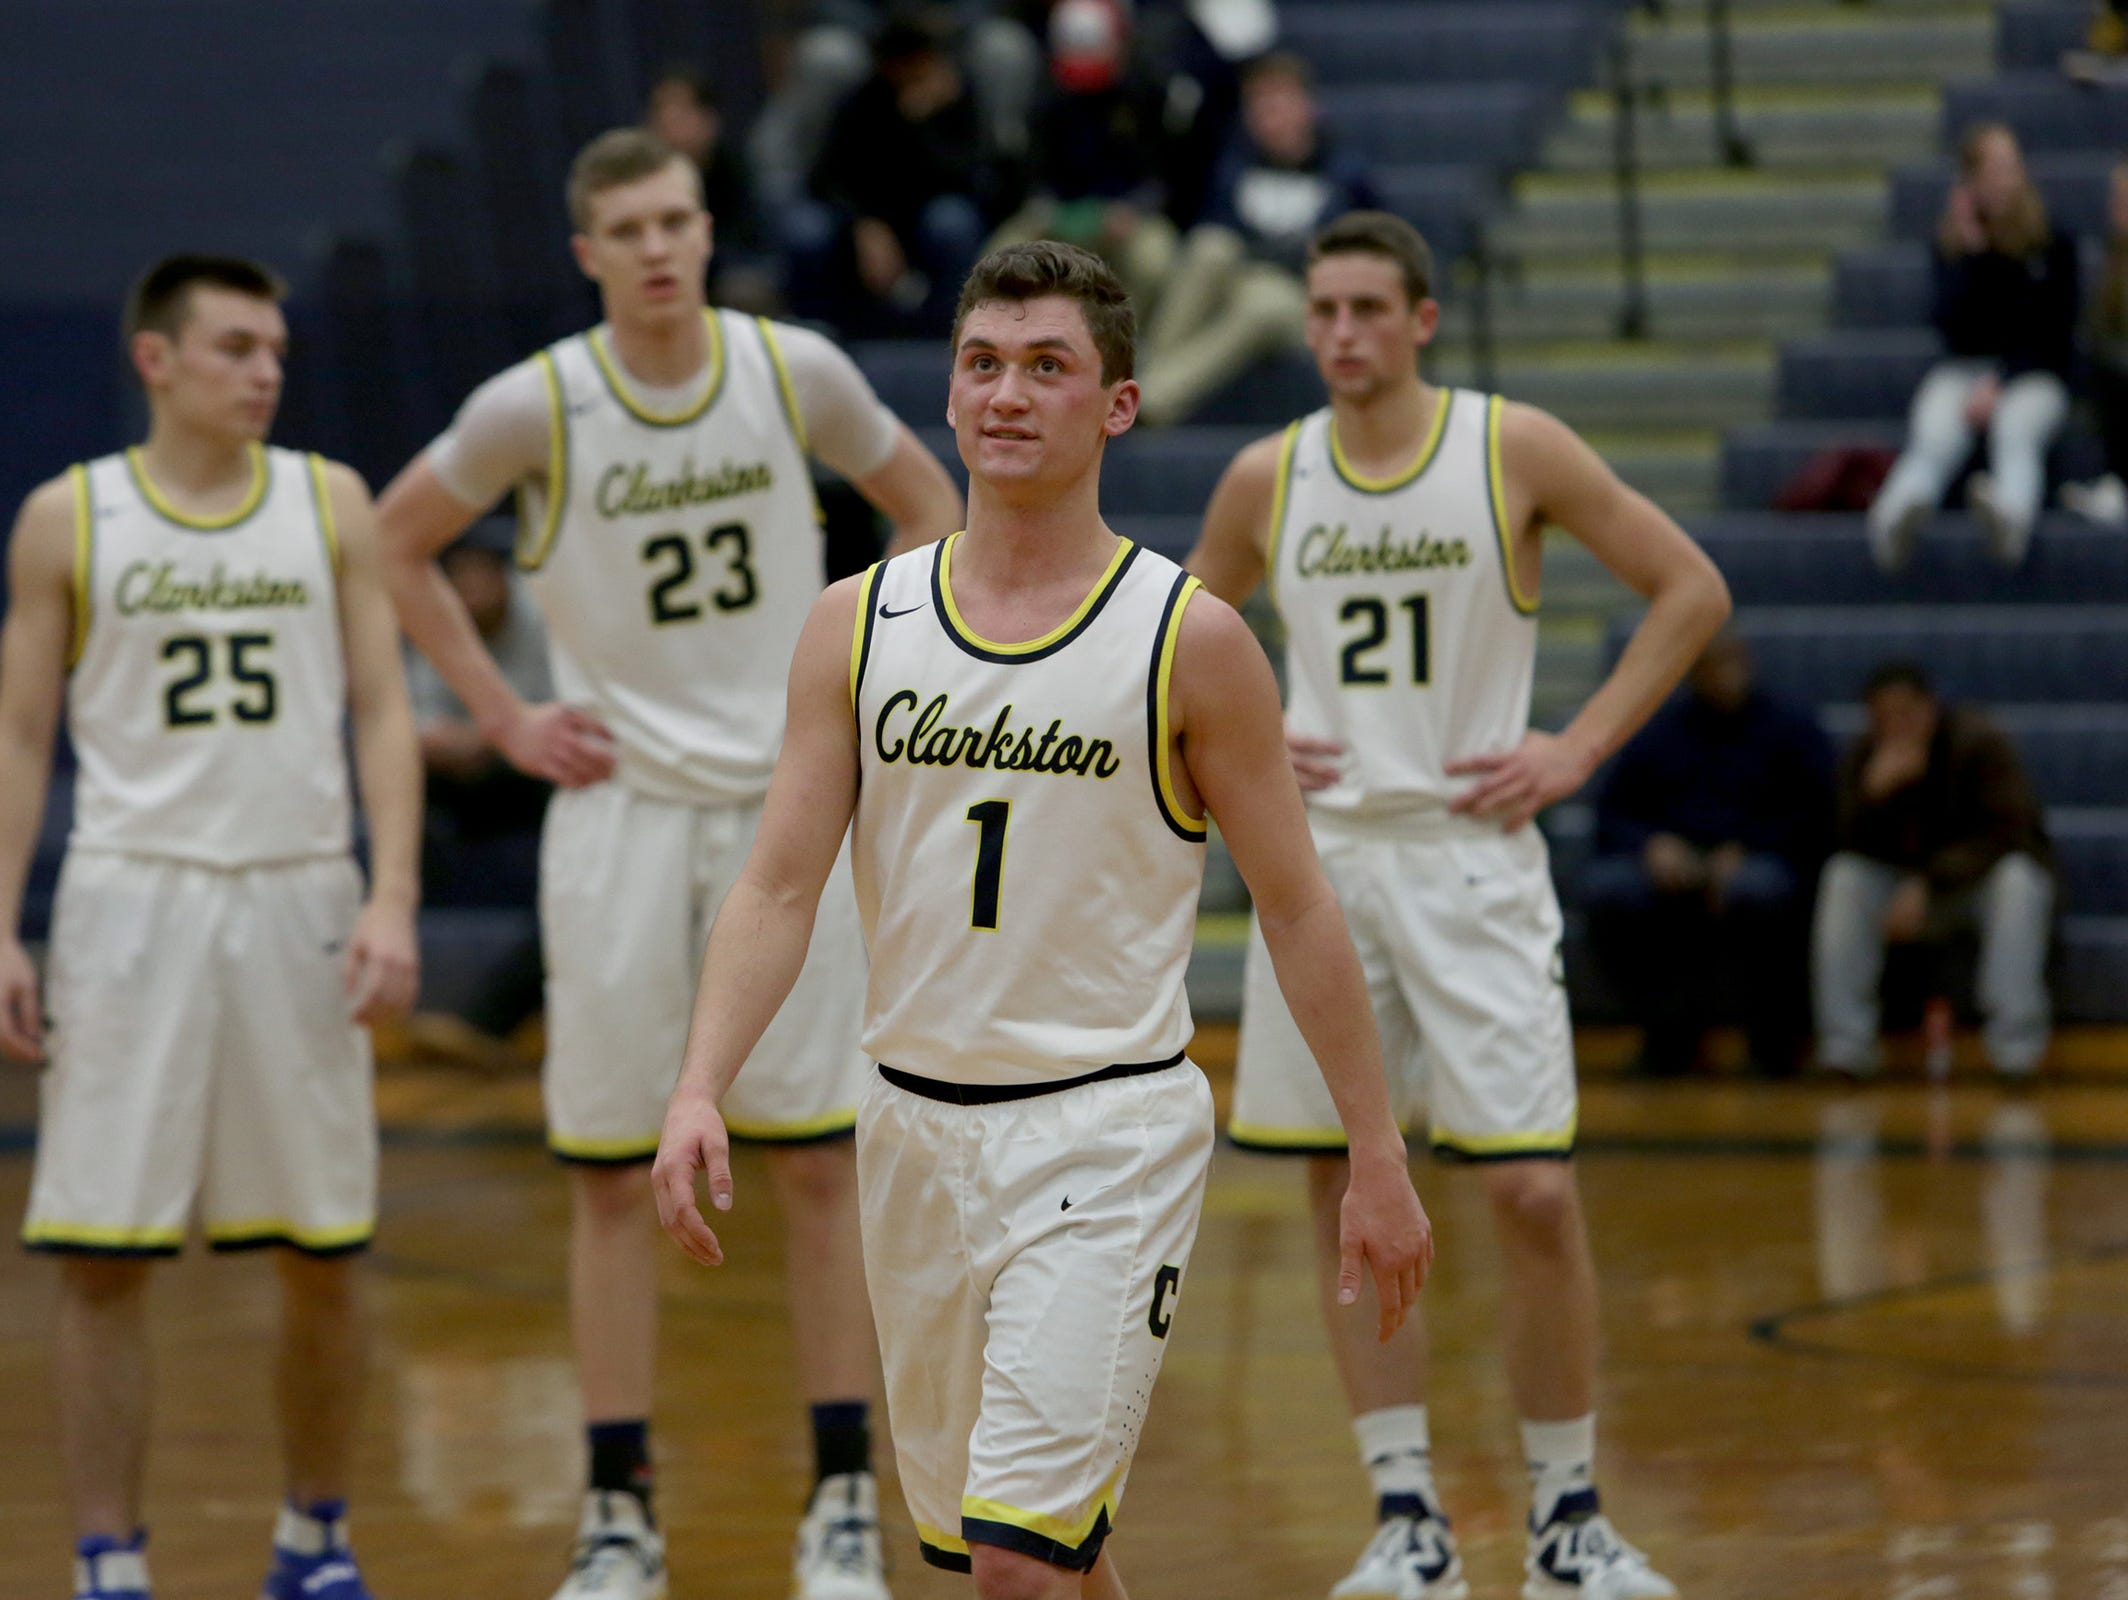 Clarkston point guard Foster Loyer (1) looks at the scoreboard during a game against Hazel Park on Thursday, Jan. 12, 2017, at Clarkston.